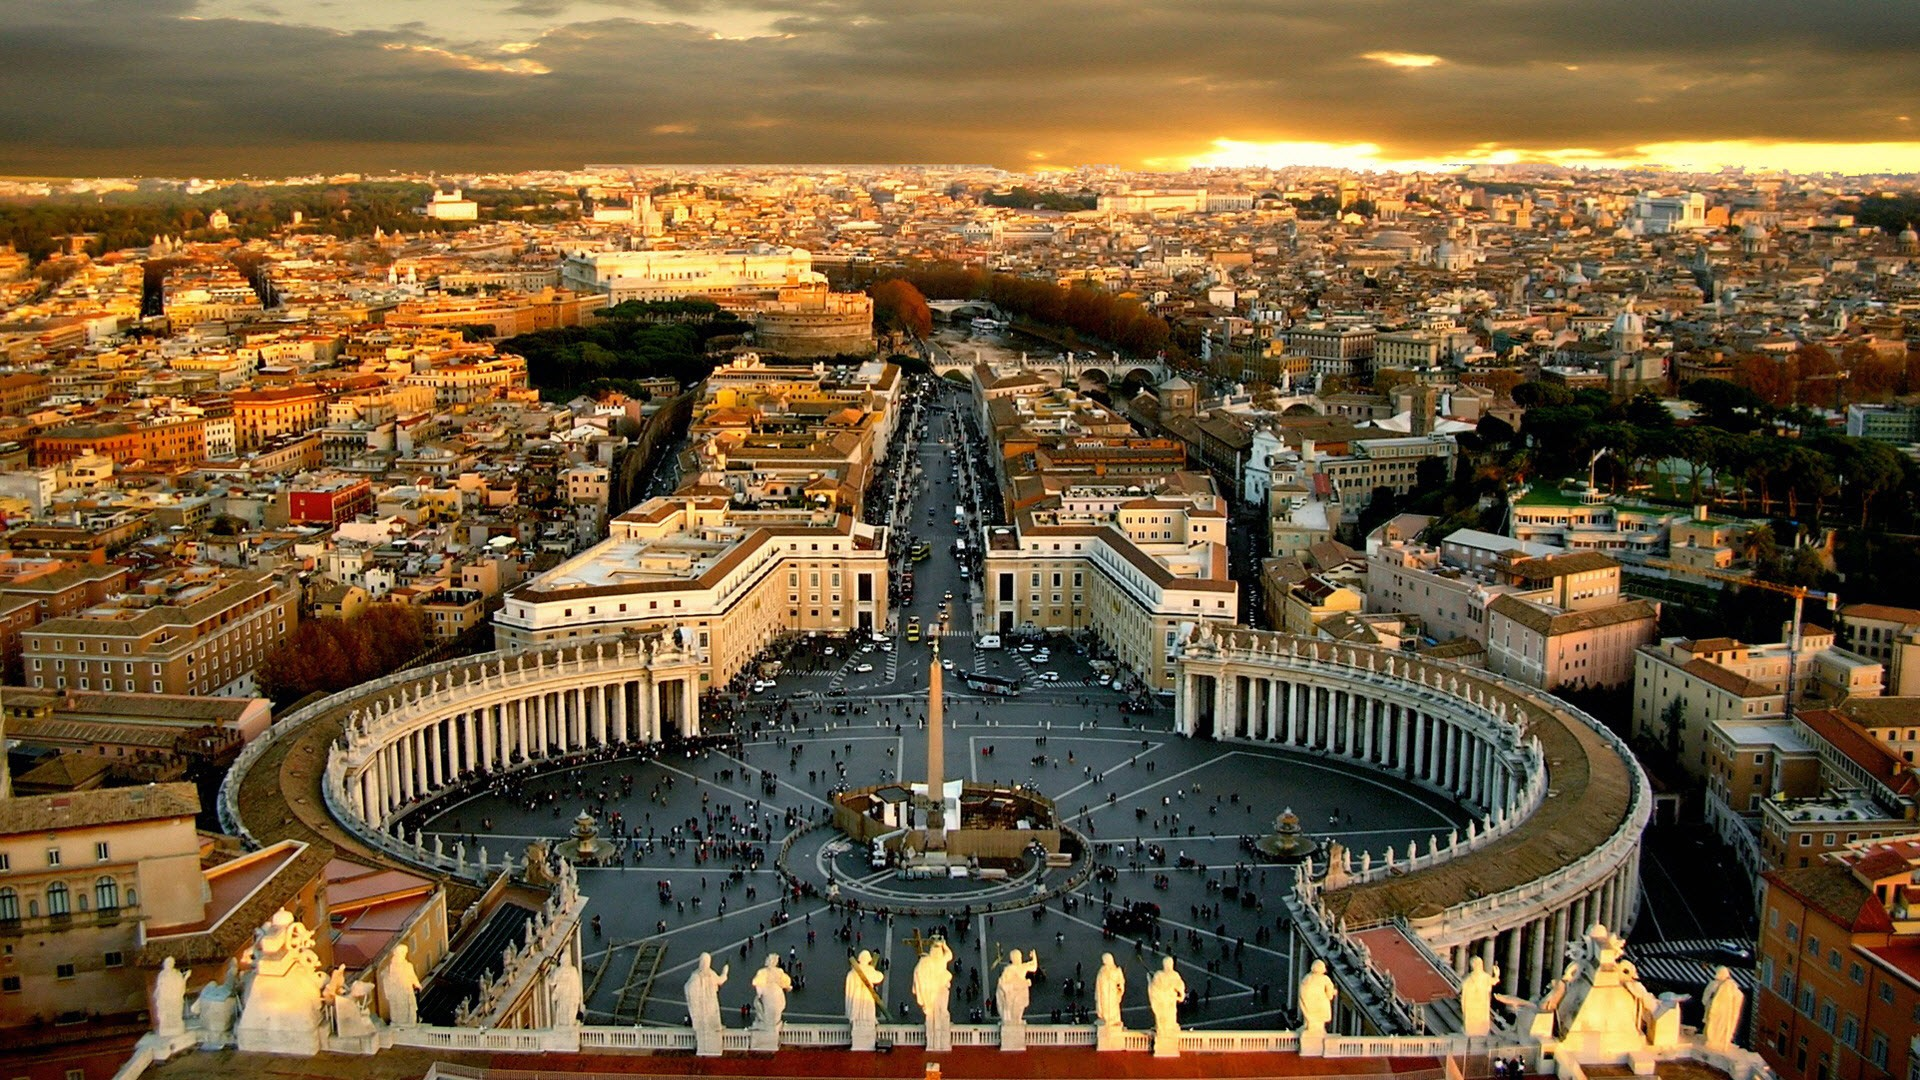 Vatican City Is Not A Part Of Italy It The Smallest Country In World And Encircled By 2 Mile Border With